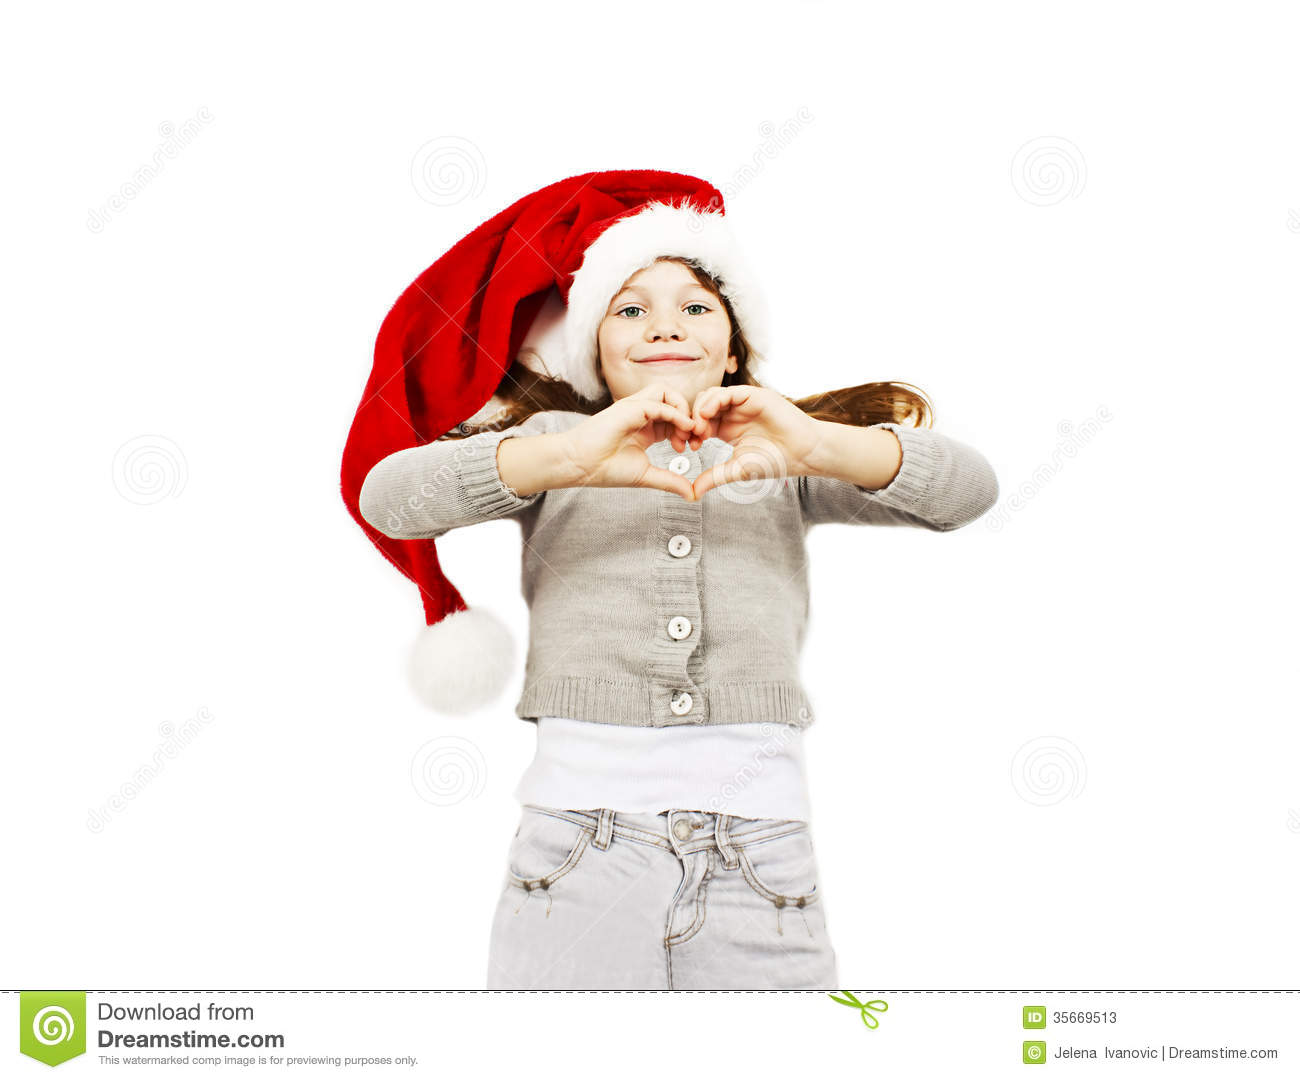 Little girl in red Santa hat making the heart with her hands